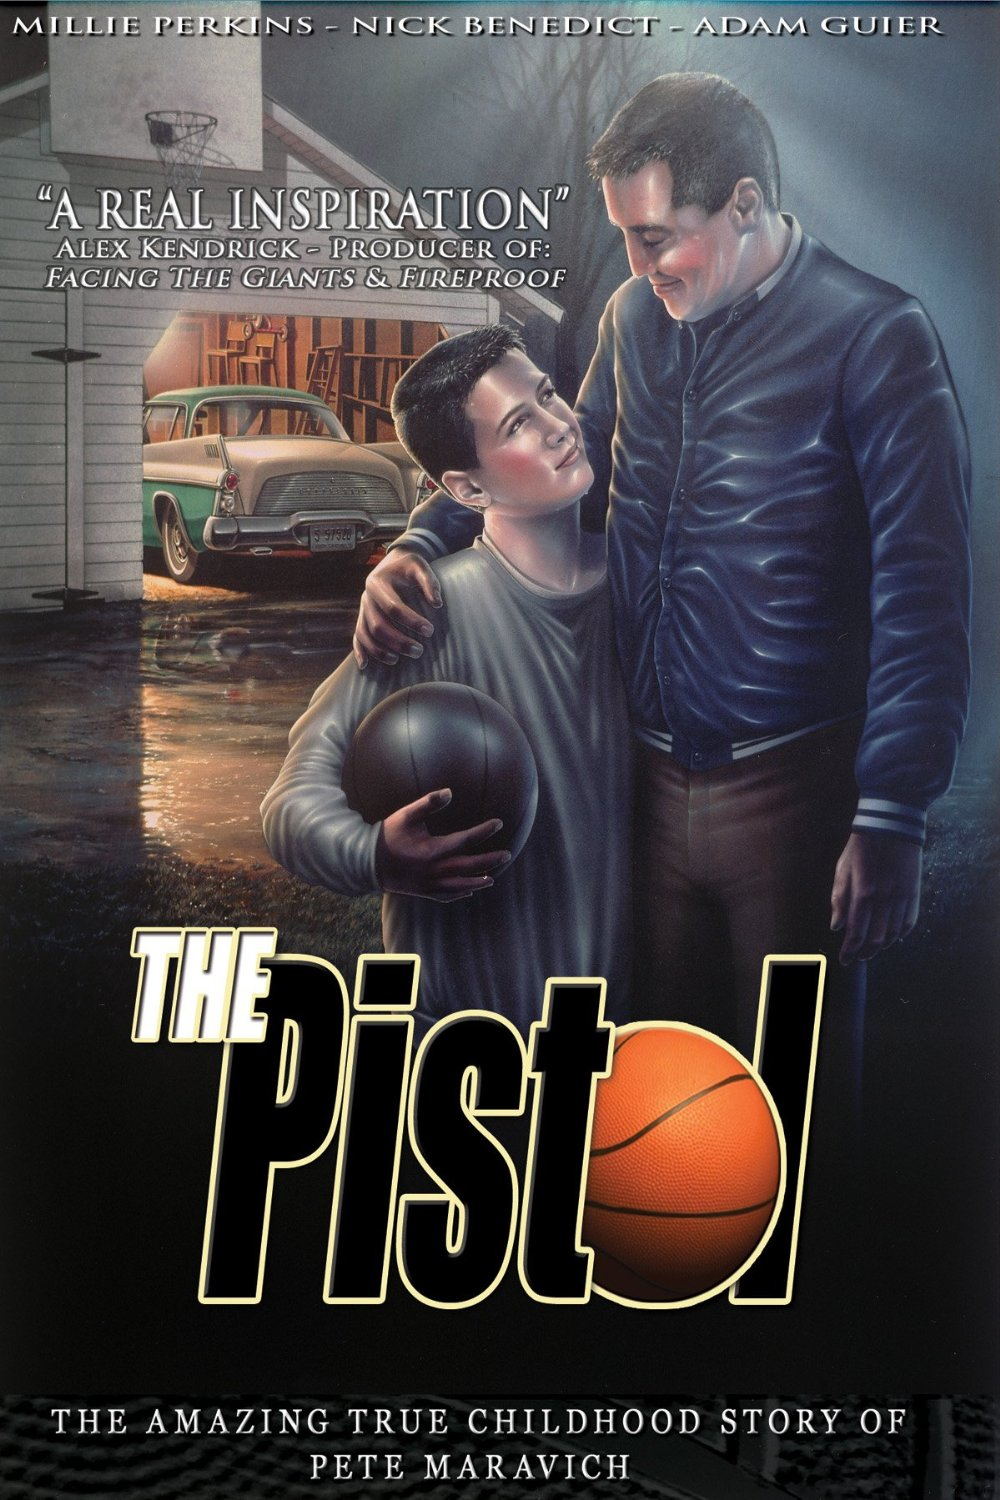 Watch Movie The Pistol: The Birth of a Legend